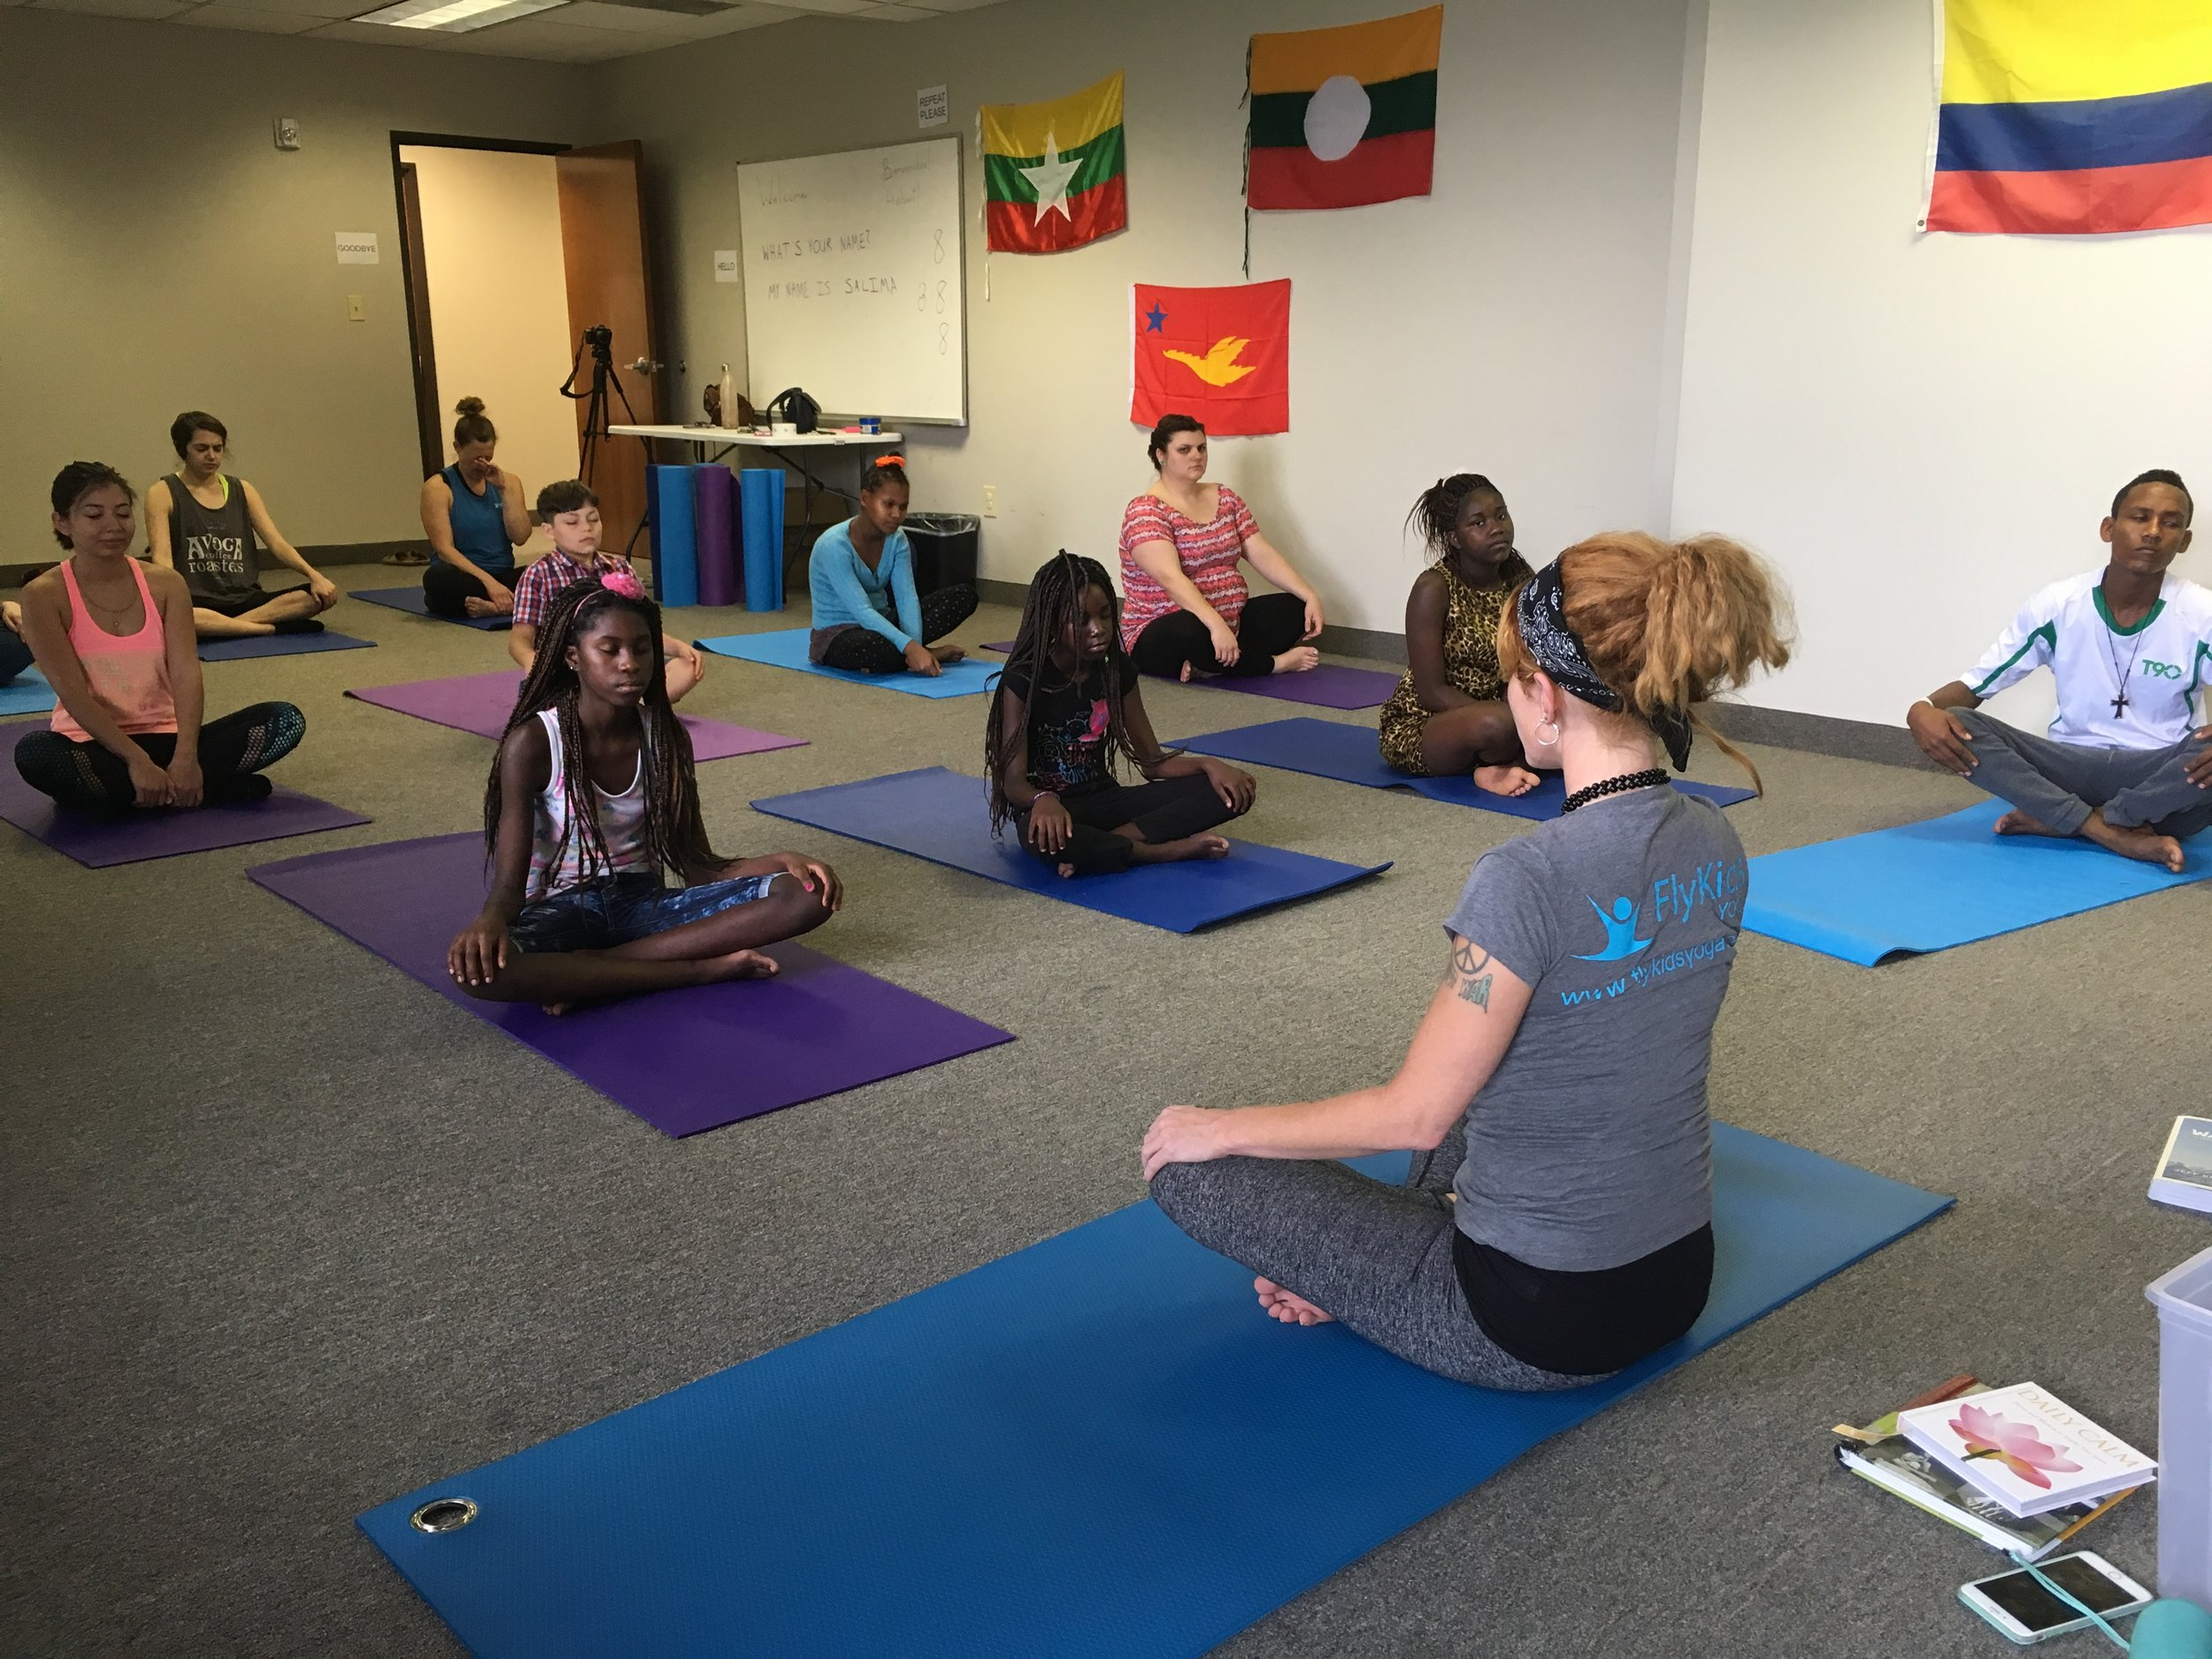 FlyKids Yoga instructor working with RST clients